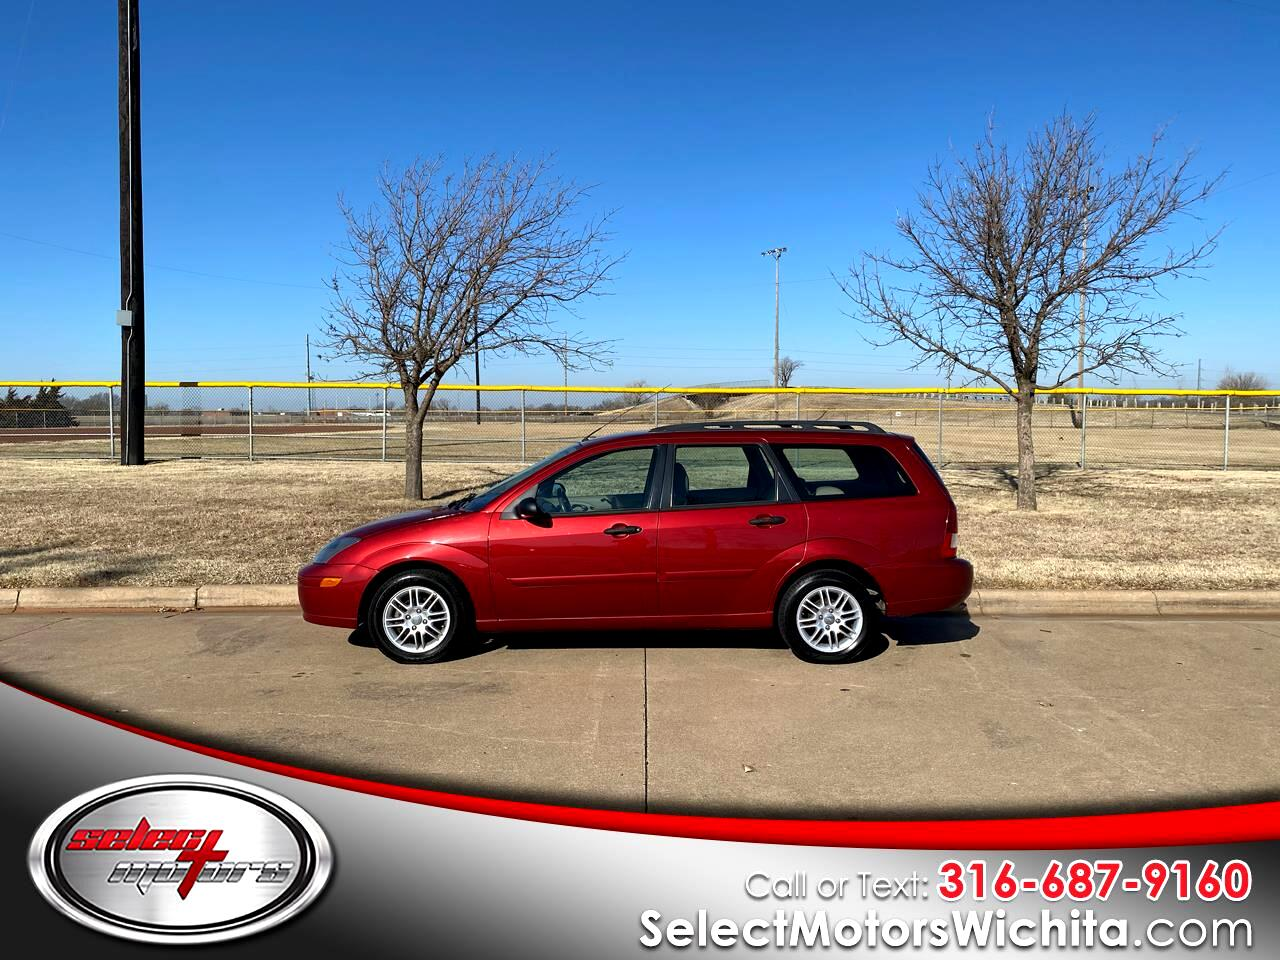 Ford Focus 4dr Wgn ZTW 2004